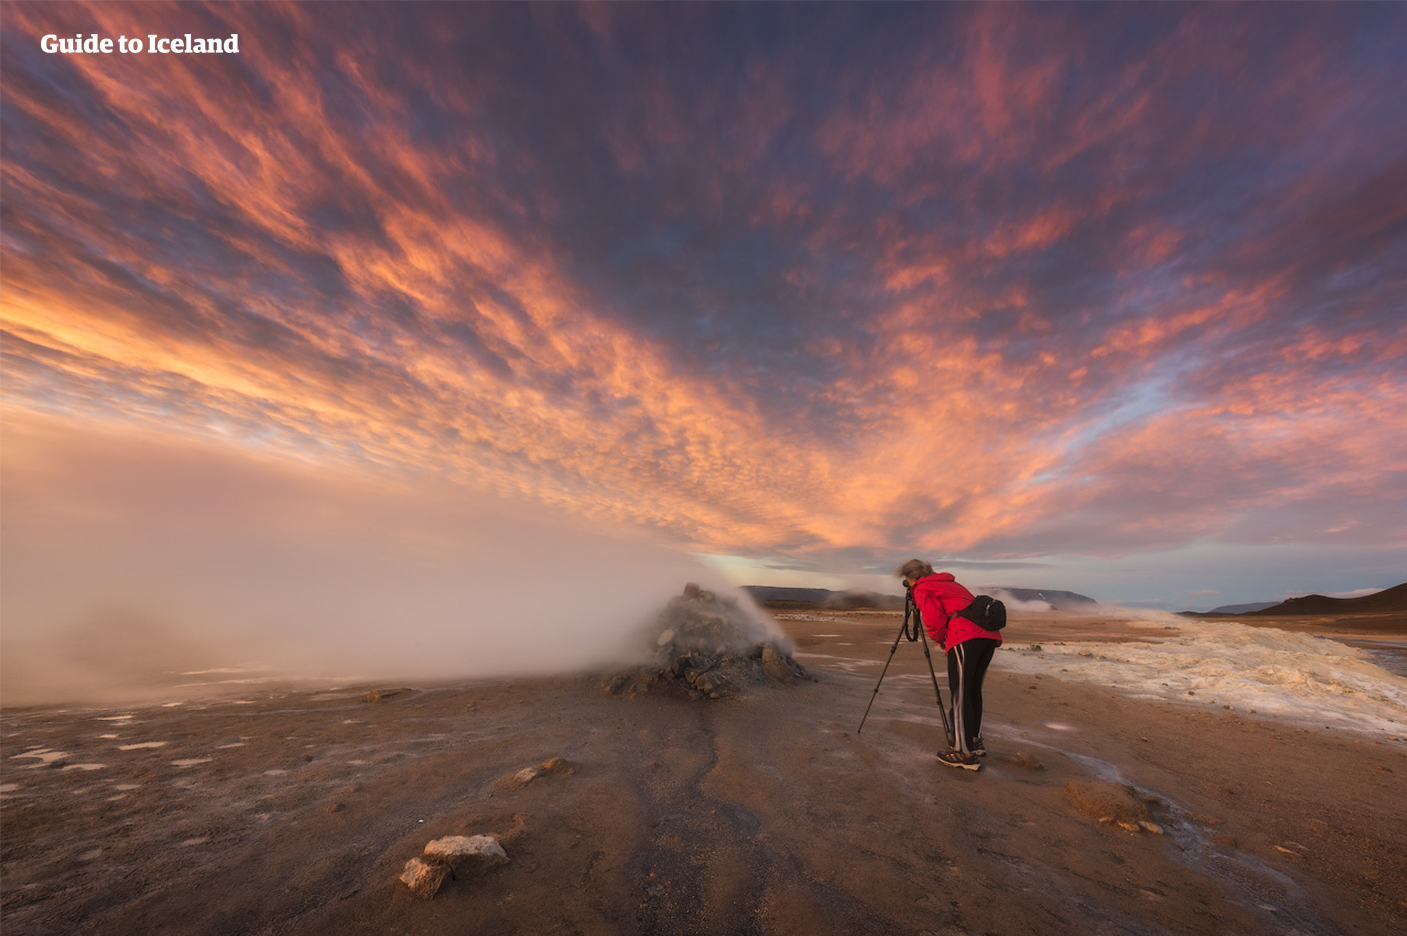 A visitor approaches a hissing fumarole at Namaskard Pass in Iceland's north.